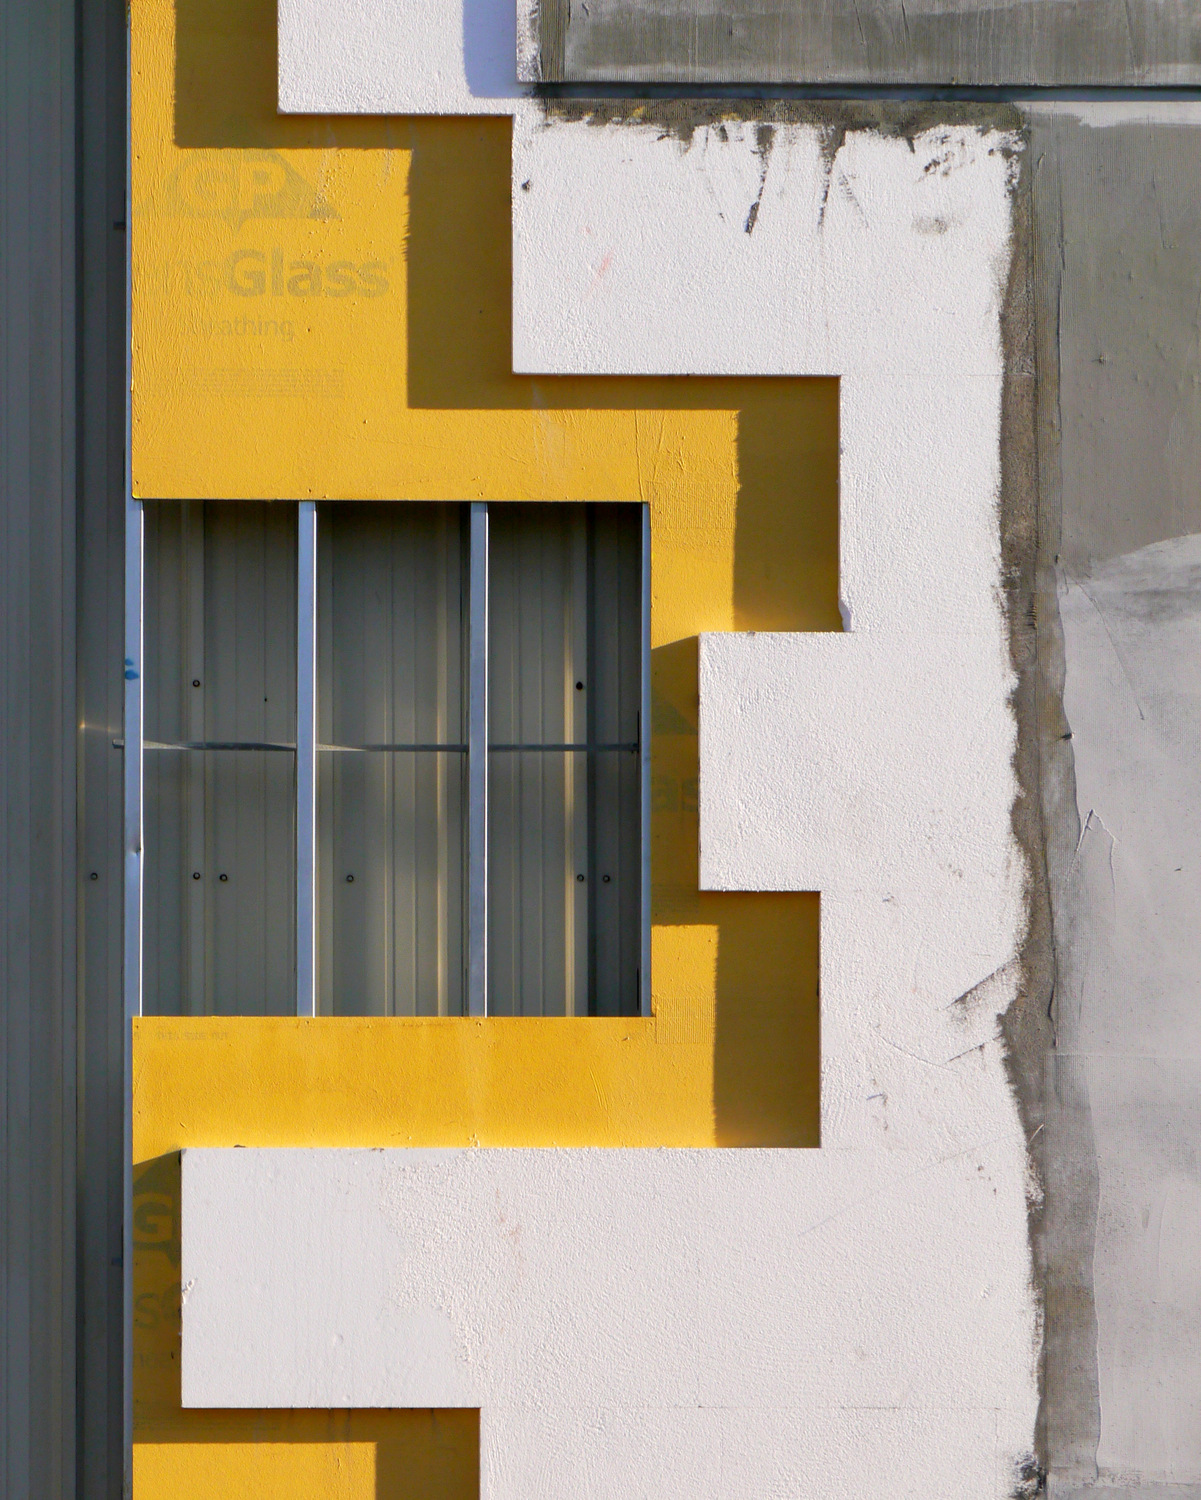 Guntis_Lauzums_Abstract Series_Yellow Building Abstract_4.JPG